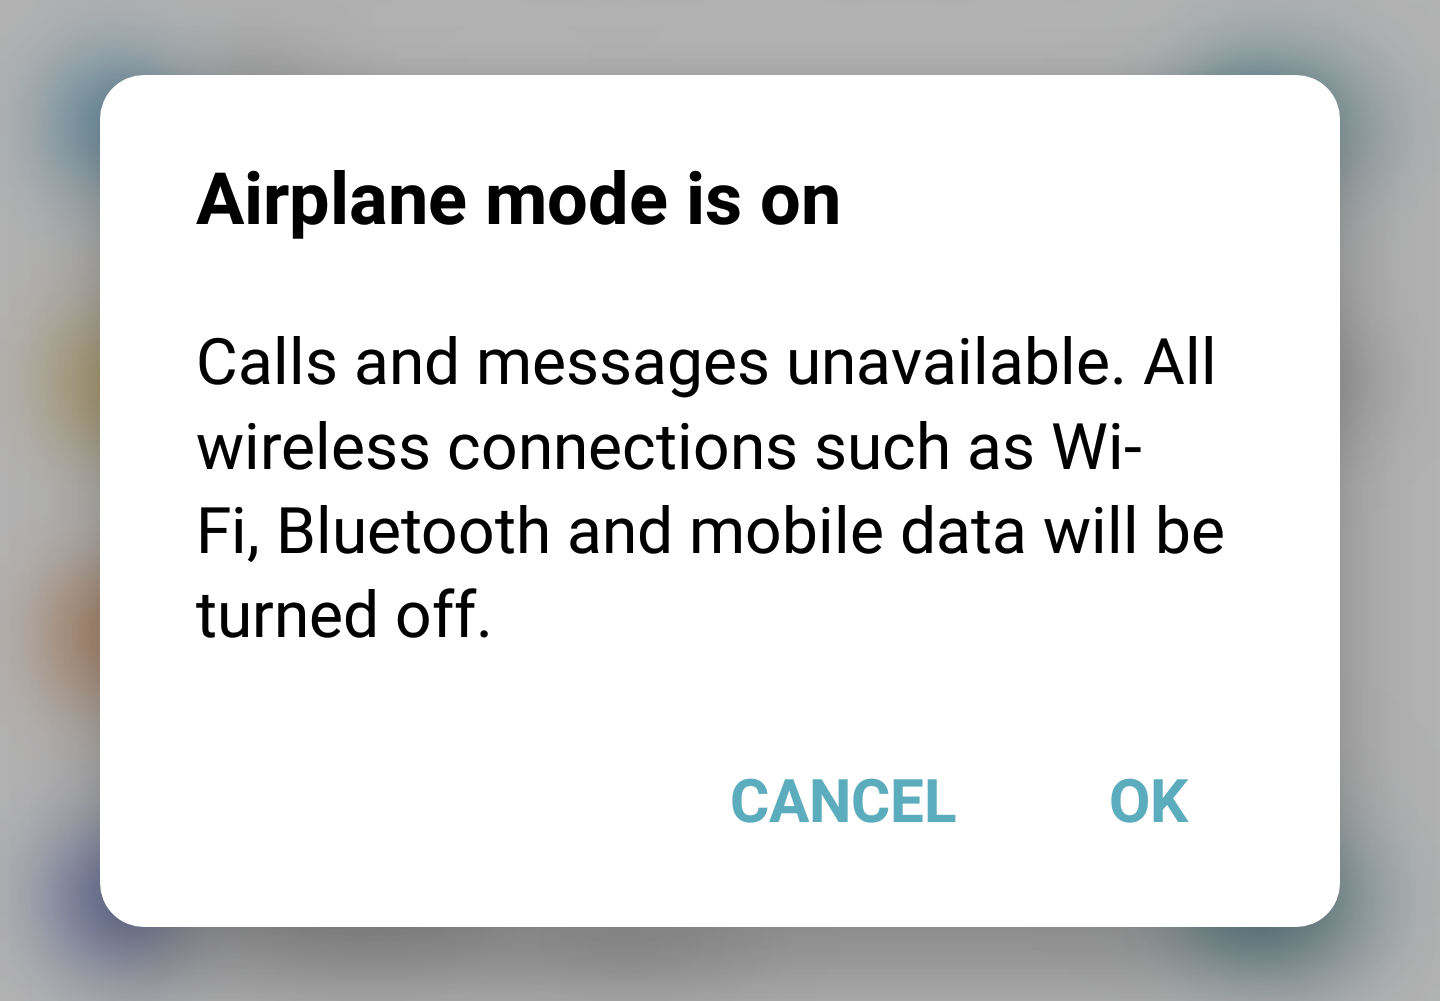 can you get texts in airplane mode